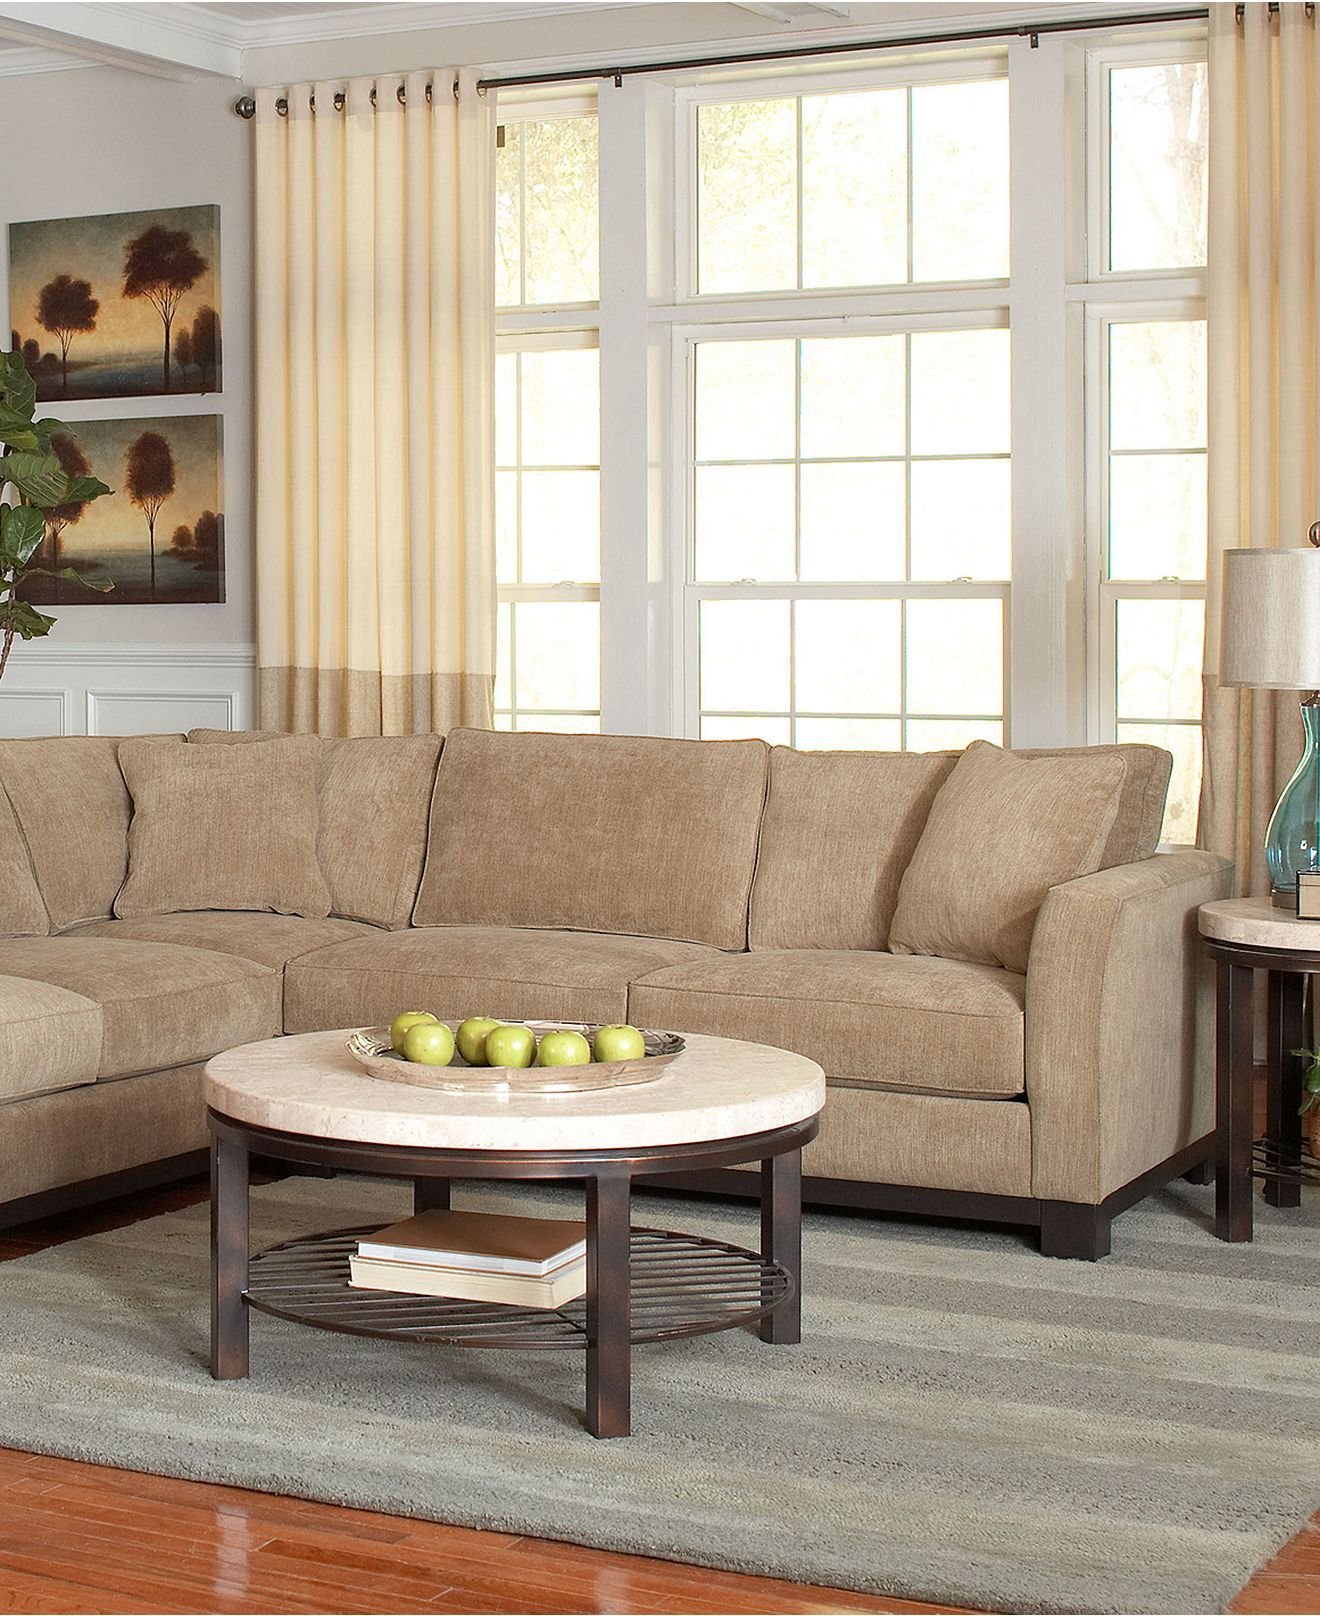 Living Room Couch Sets Kenton Sectional Living Room Furniture Sets Pieces Living Room